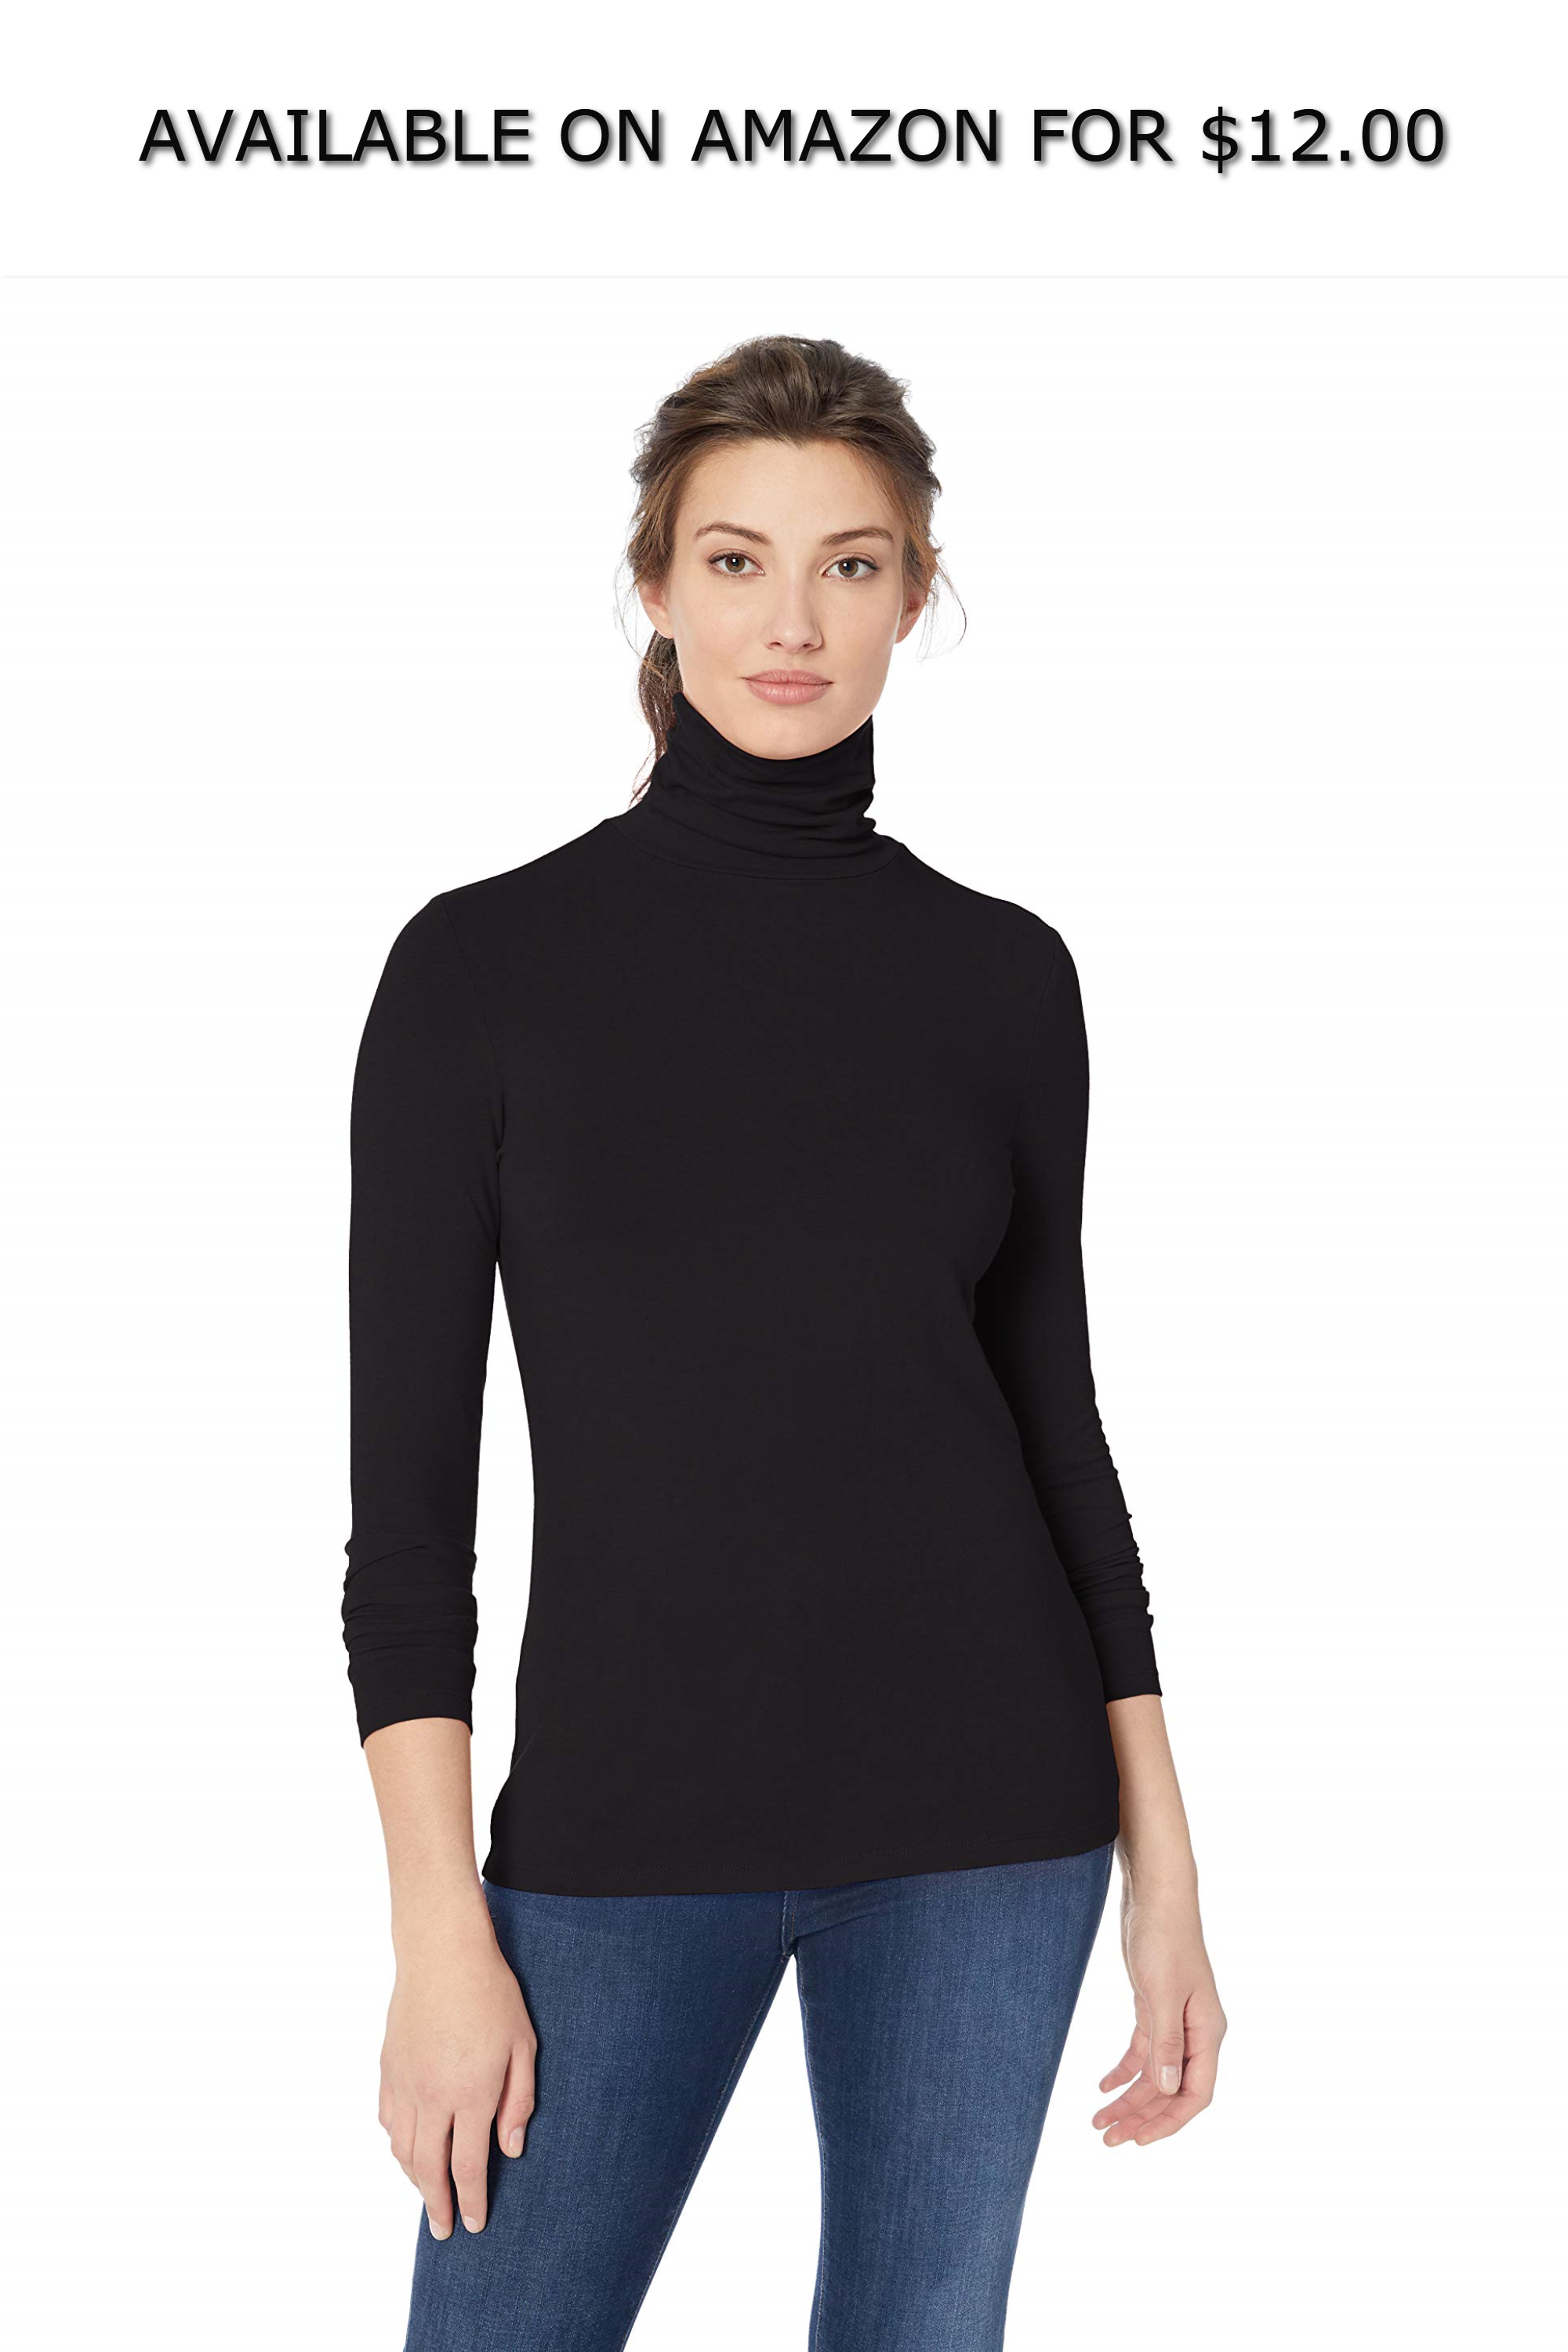 591e31cb6 Amazon Essentials Women's Long-Sleeve Turtleneck ◇ AVAILABLE ON AMAZON FOR:  $12.00 ◇ An